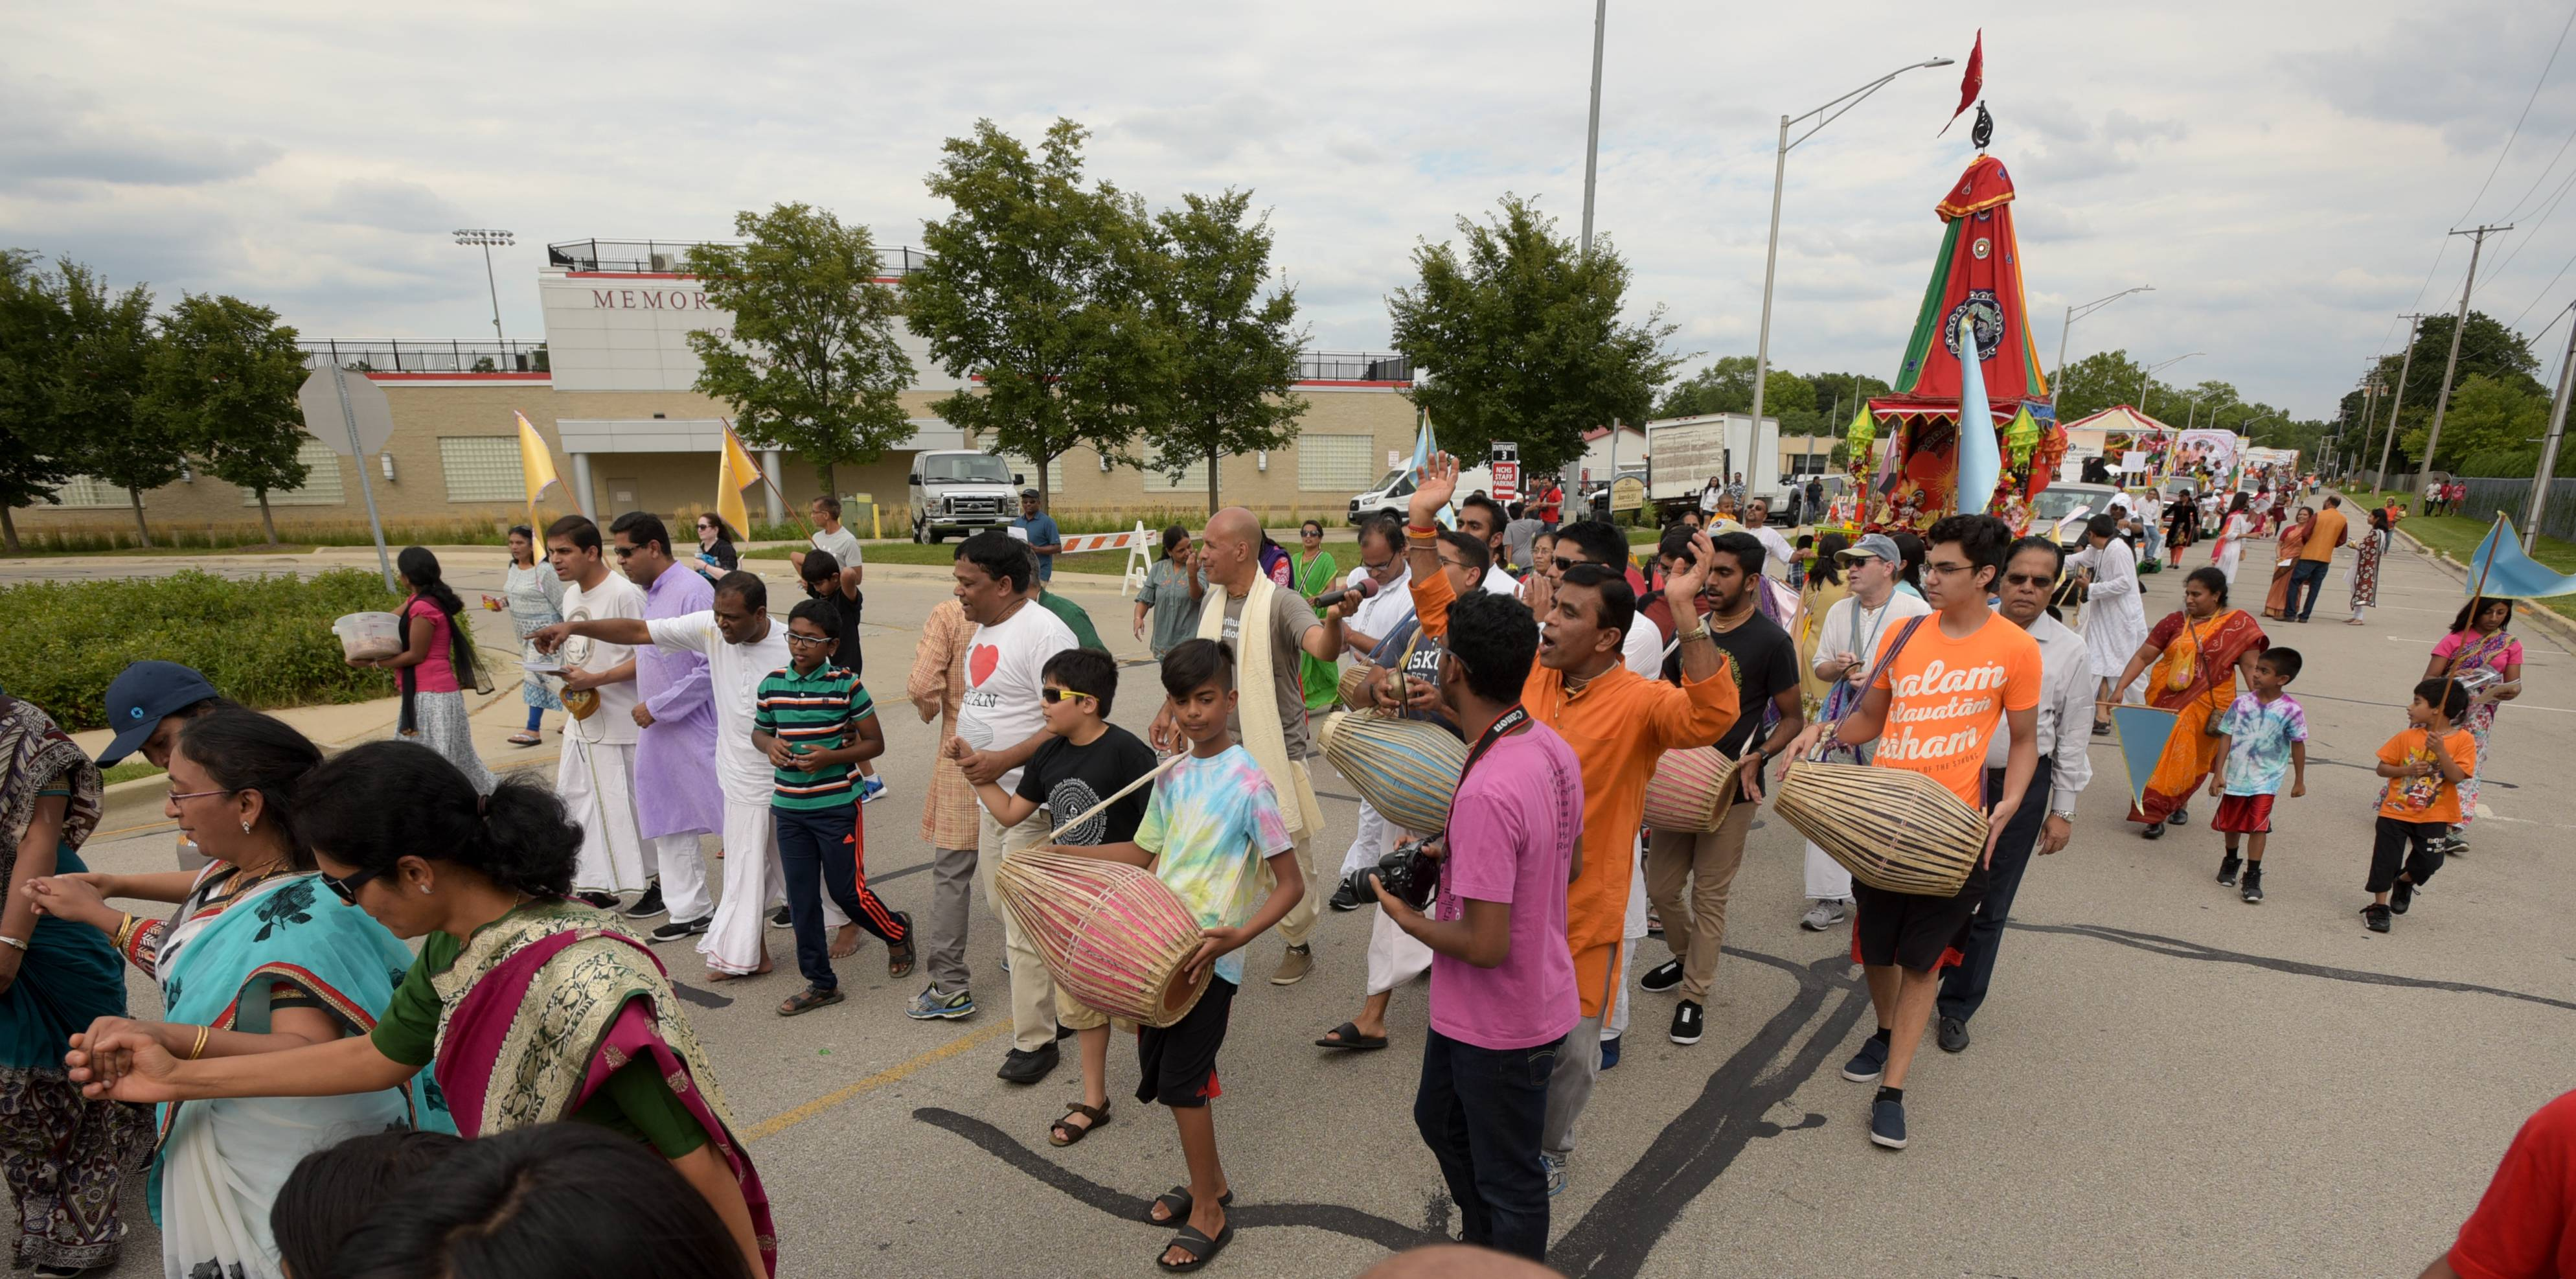 Members of the International Society for Krishna Consciousness, also known as the Hare Krishna movement, march Sunday in the third annual India Day Parade and Festival in Naperville.